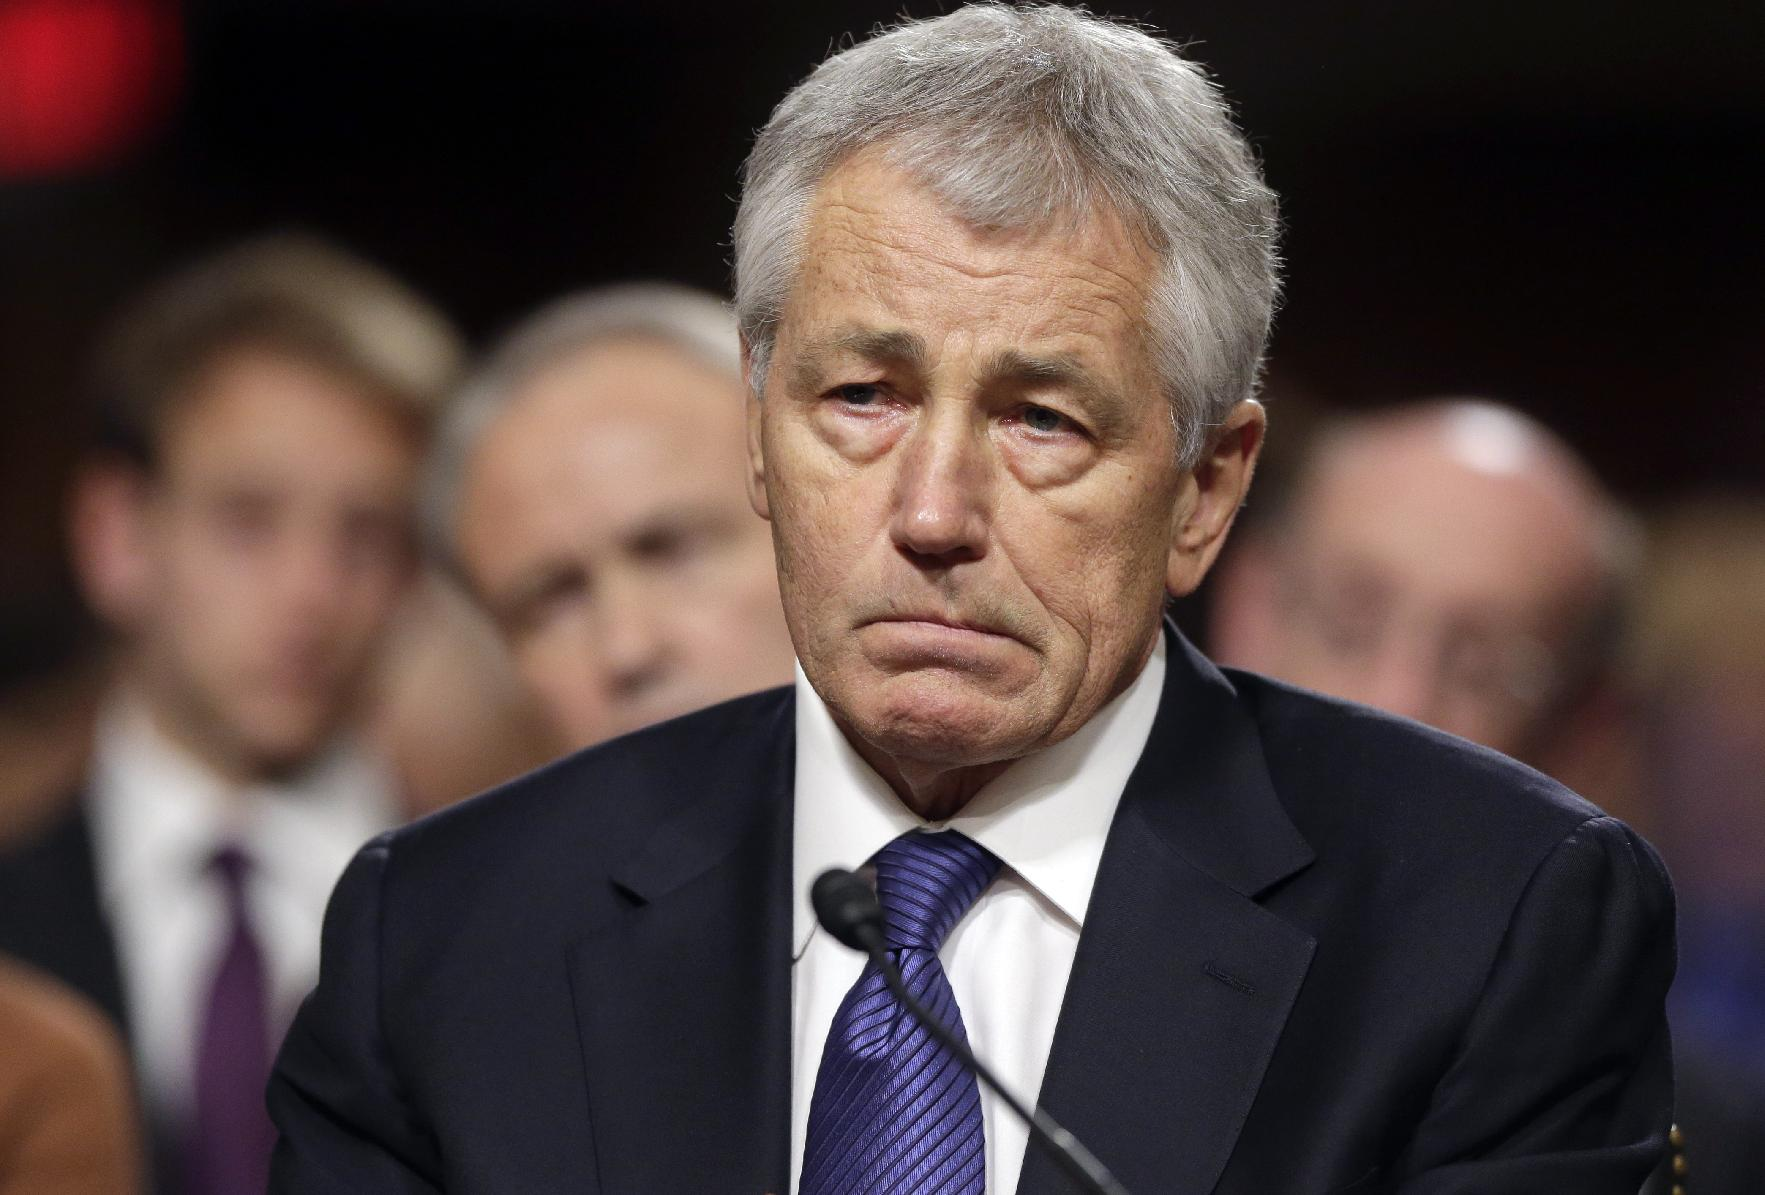 Republican Chuck Hagel testifies before the Senate Armed Services Committee on Jan. 31, 2103. (J. Scott Applewhite/AP)